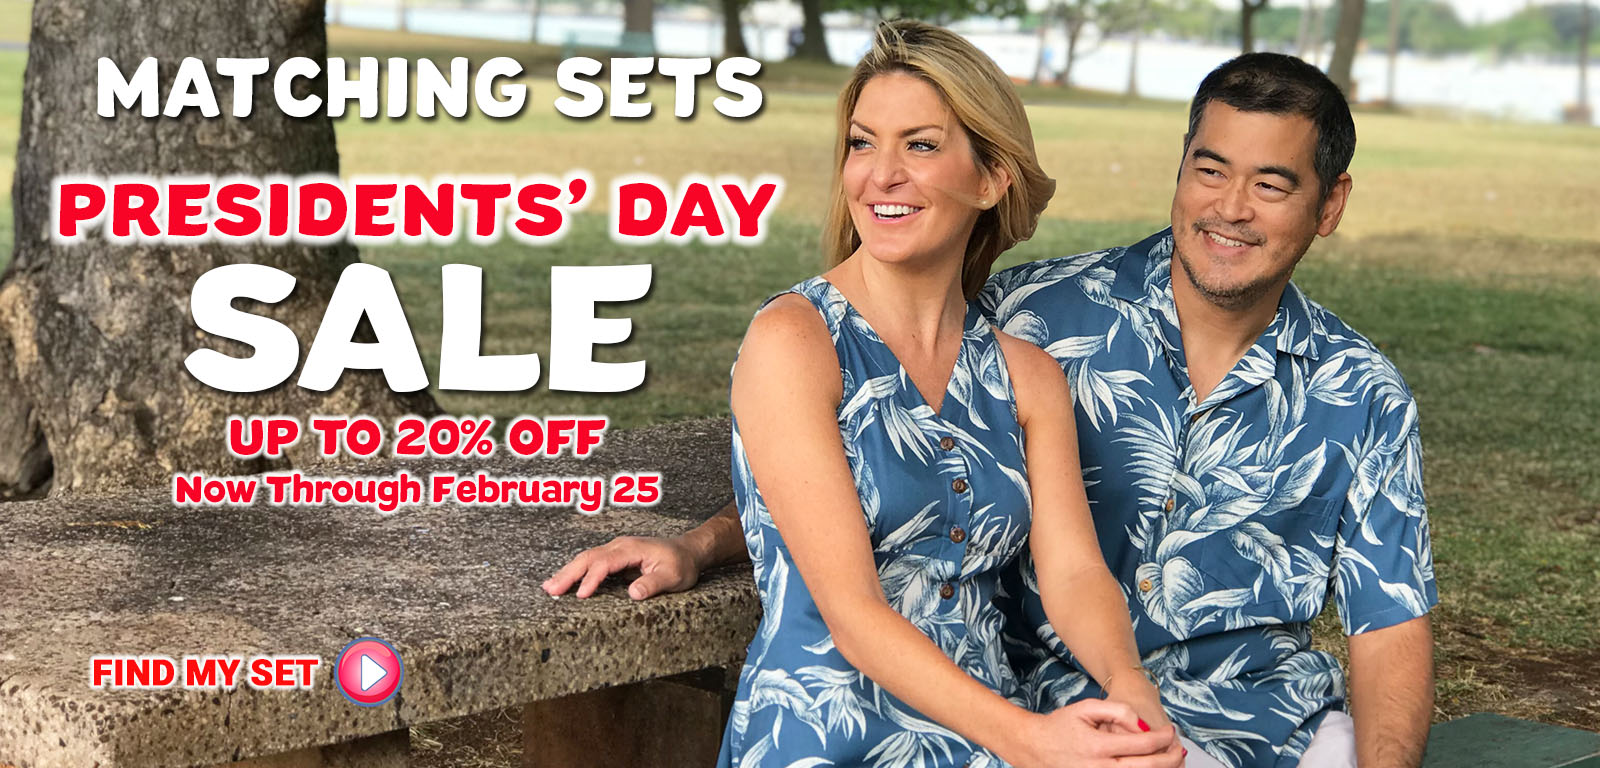 Matching Shirts and Dresses Presidents' Day Sale